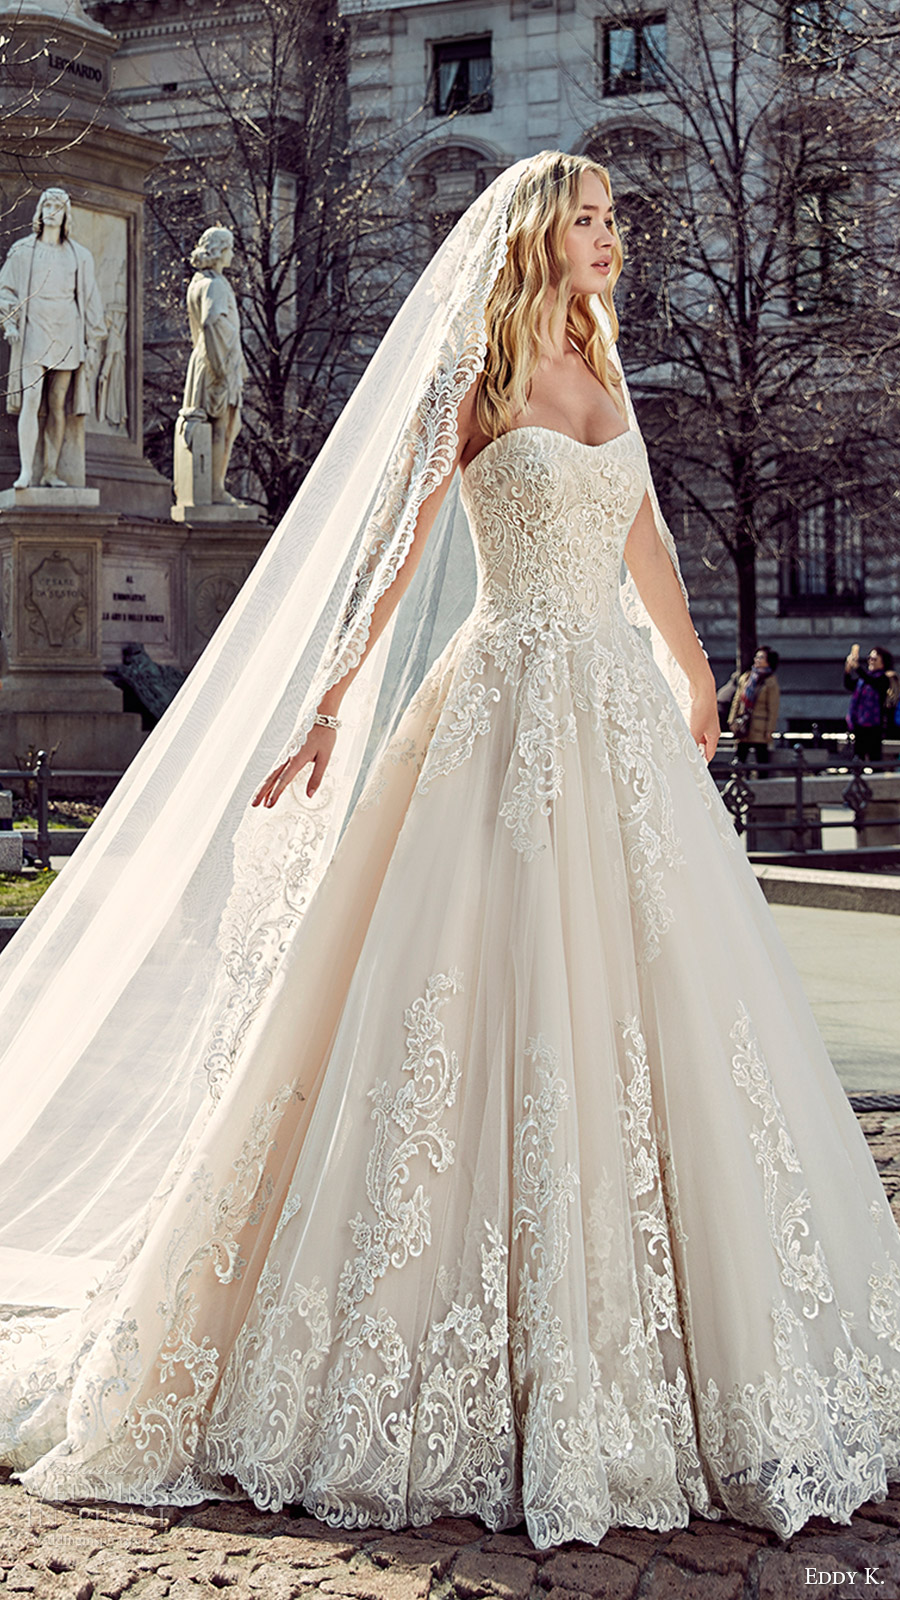 eddy k milano bridal 2017 sleeveless sweetheart lace ball gown wedding dress (md197) fv train veil